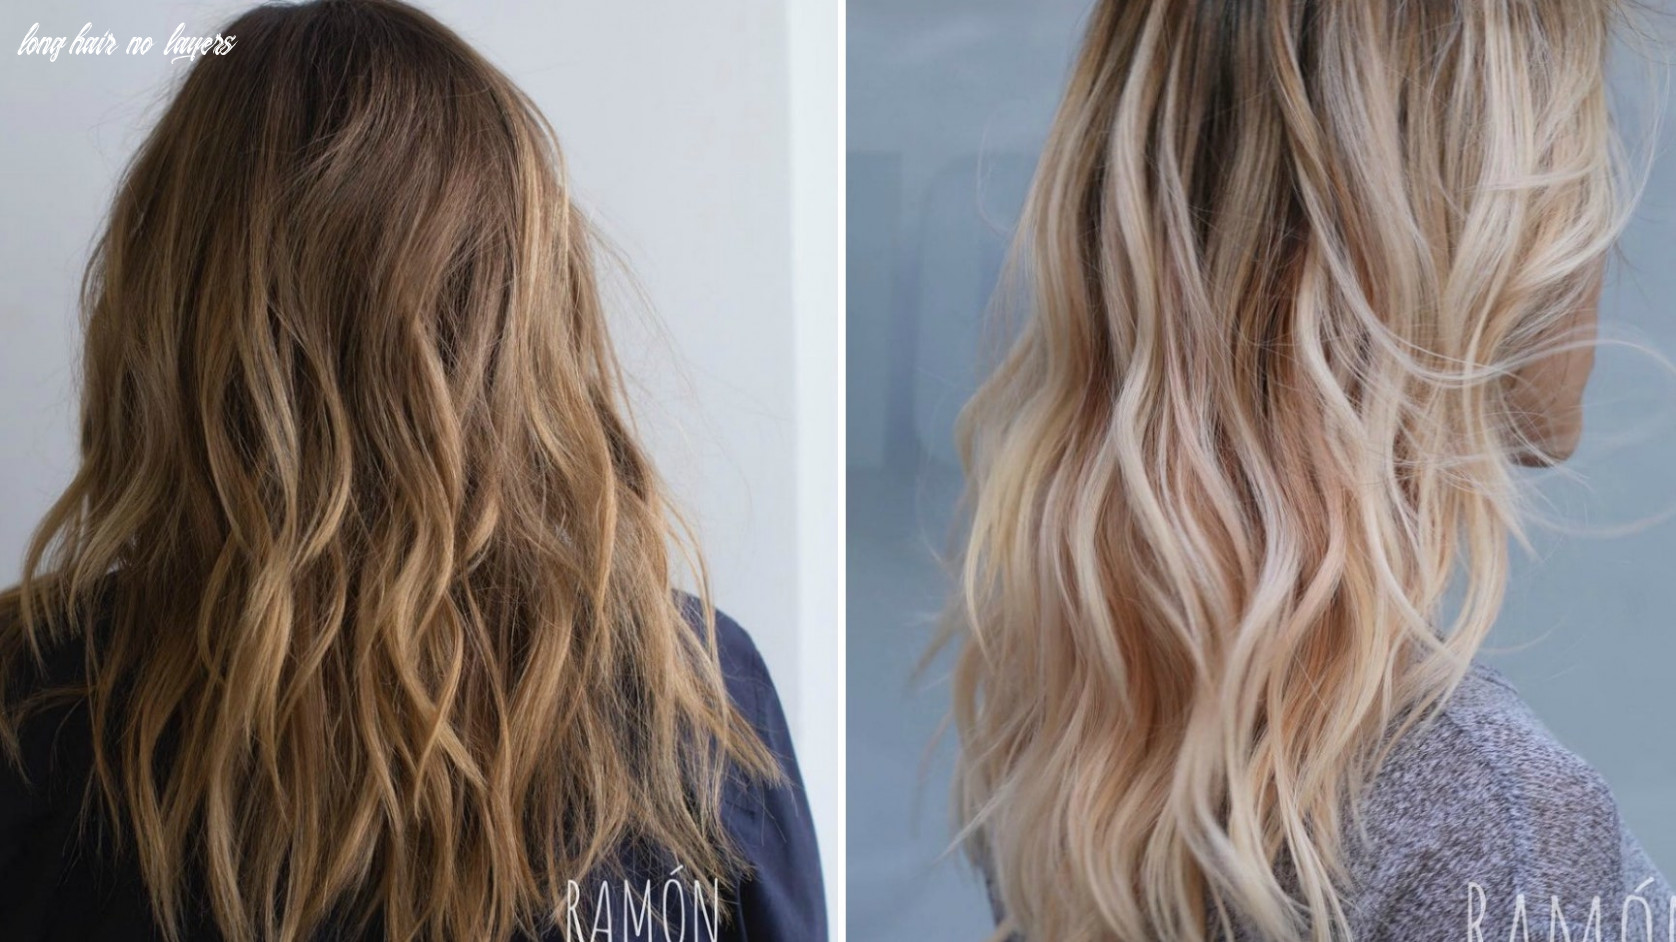 """Ghost layers"""" is a new haircut technique from stylist ramòn garcia"""